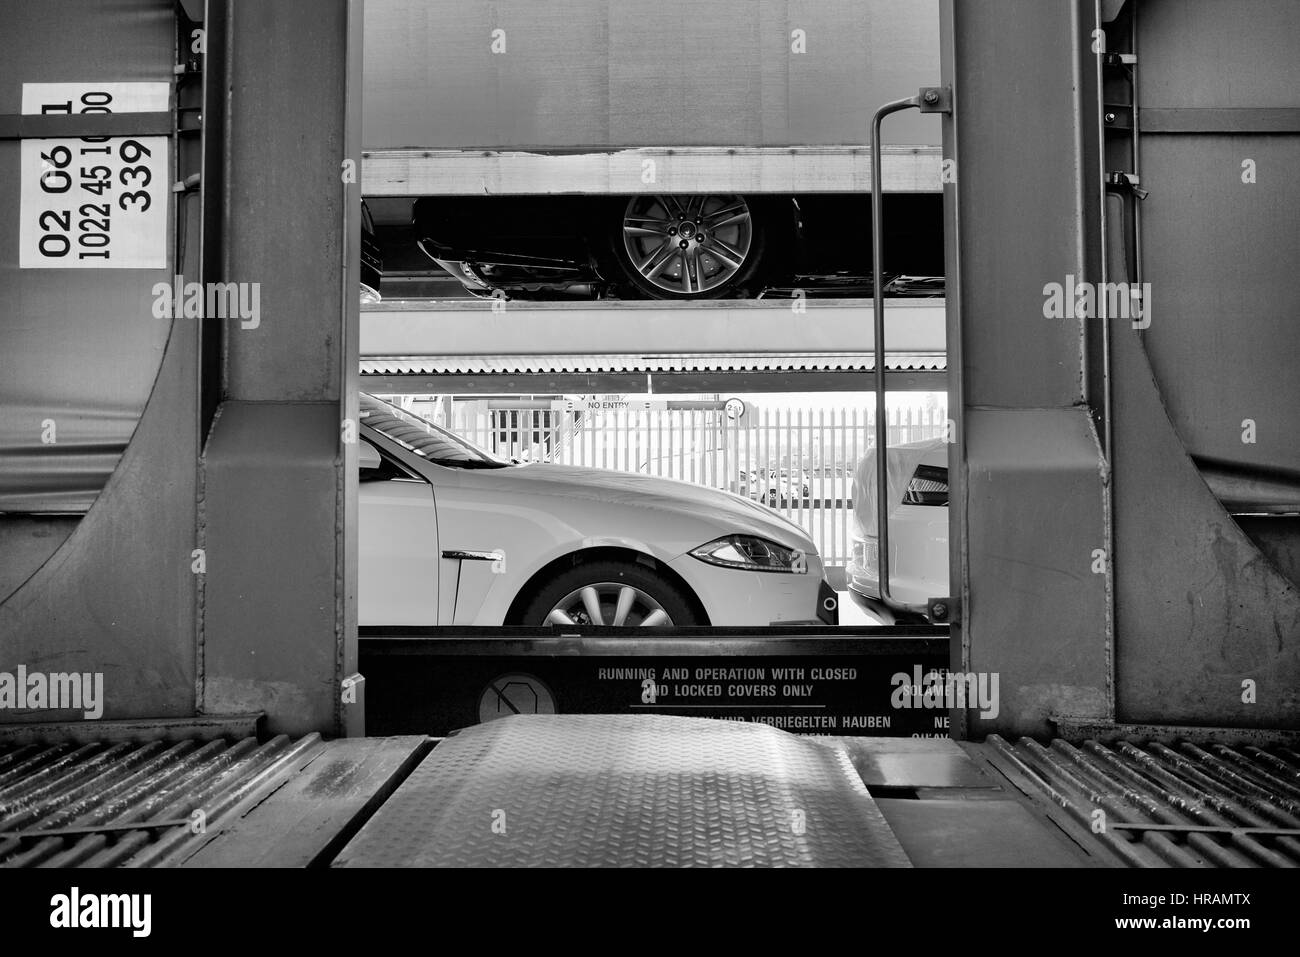 Unloading cars from a train in The Port of Southampton, England - Stock Image